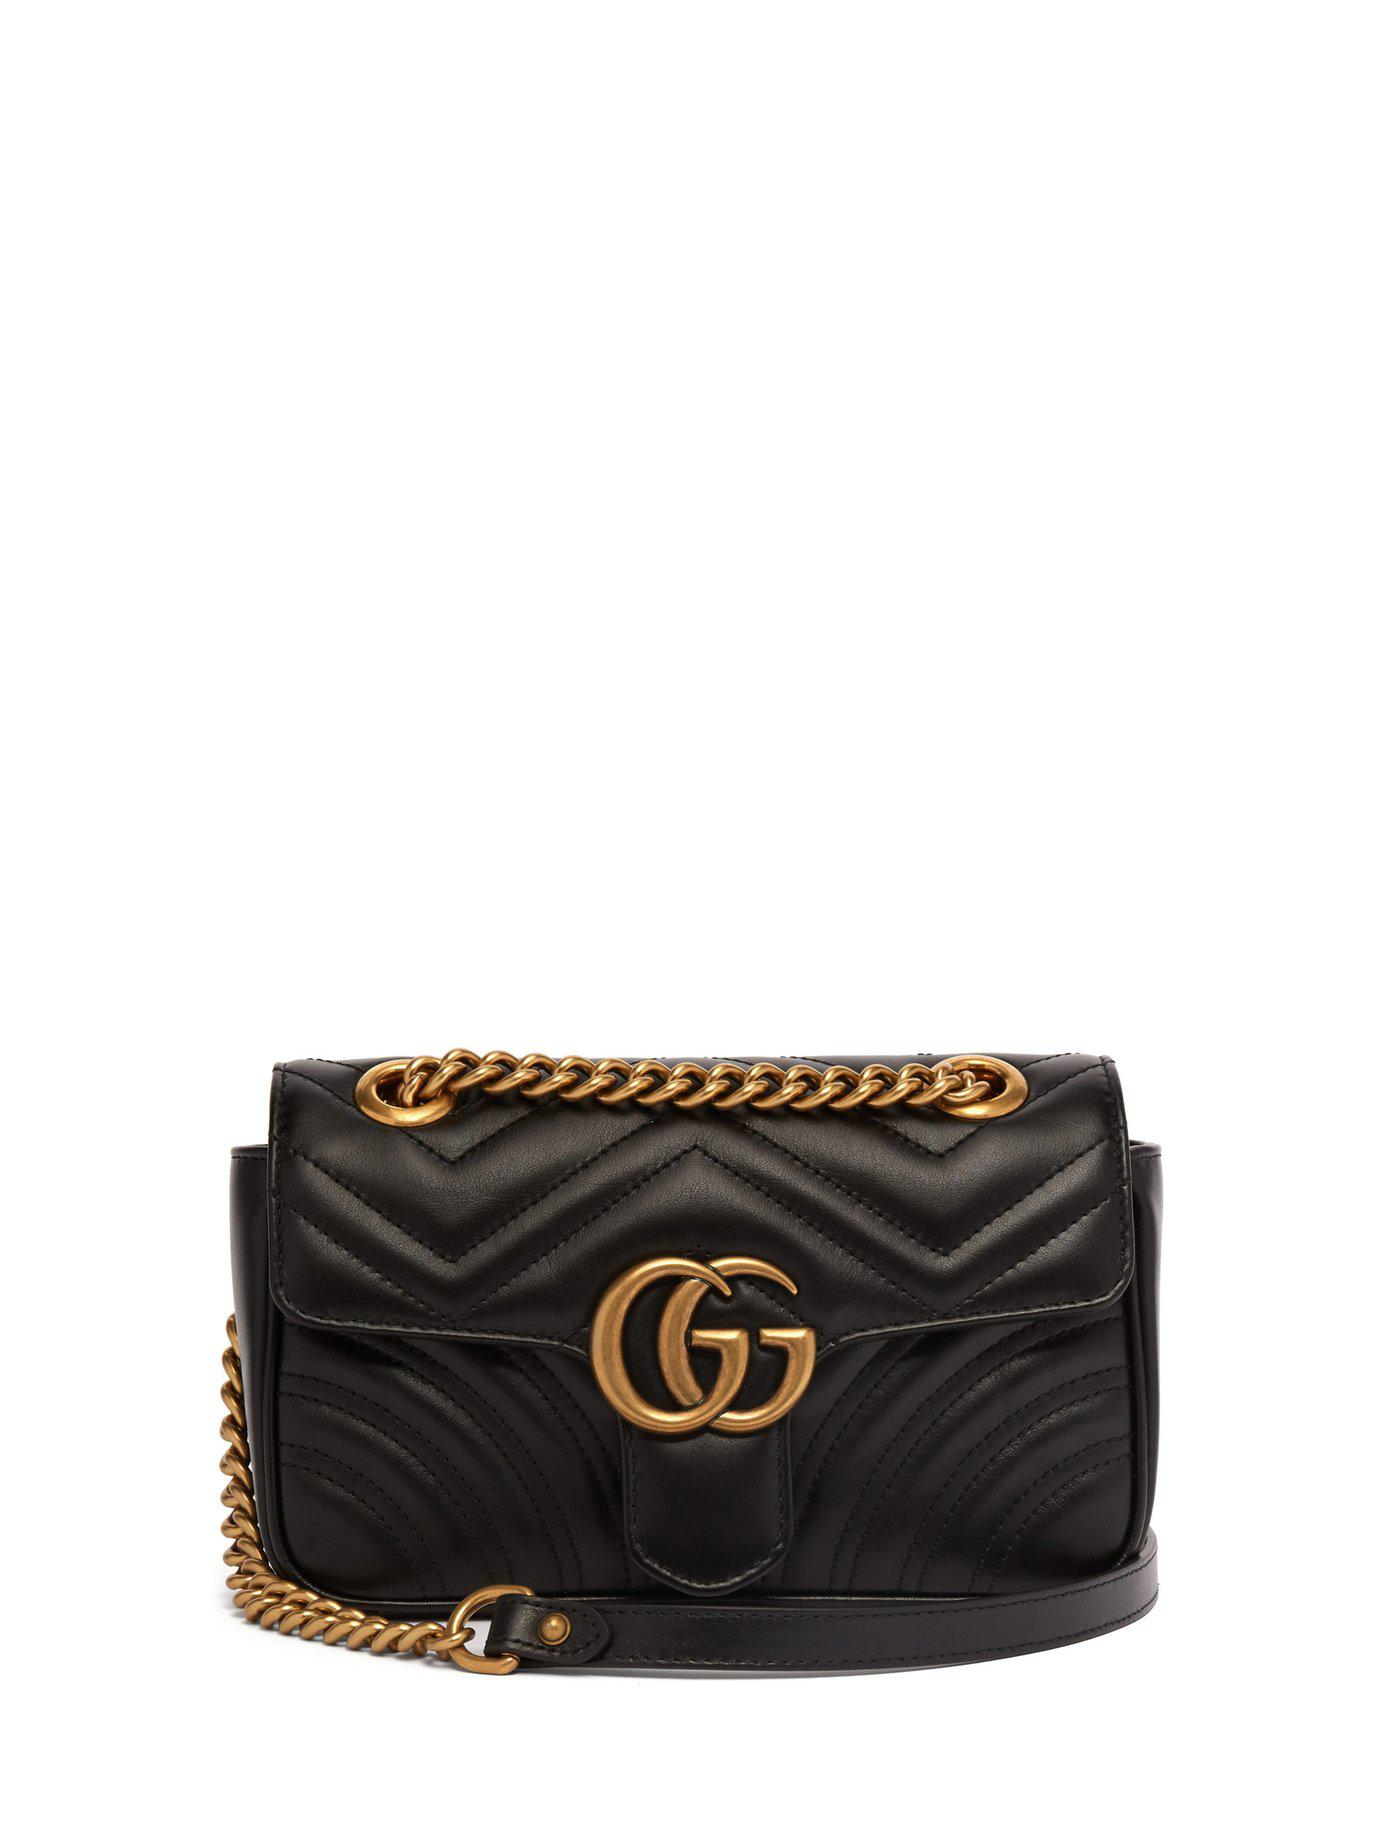 9307ec08b Gucci Gg Marmont Mini Quilted Leather Cross Body Bag in Black - Lyst